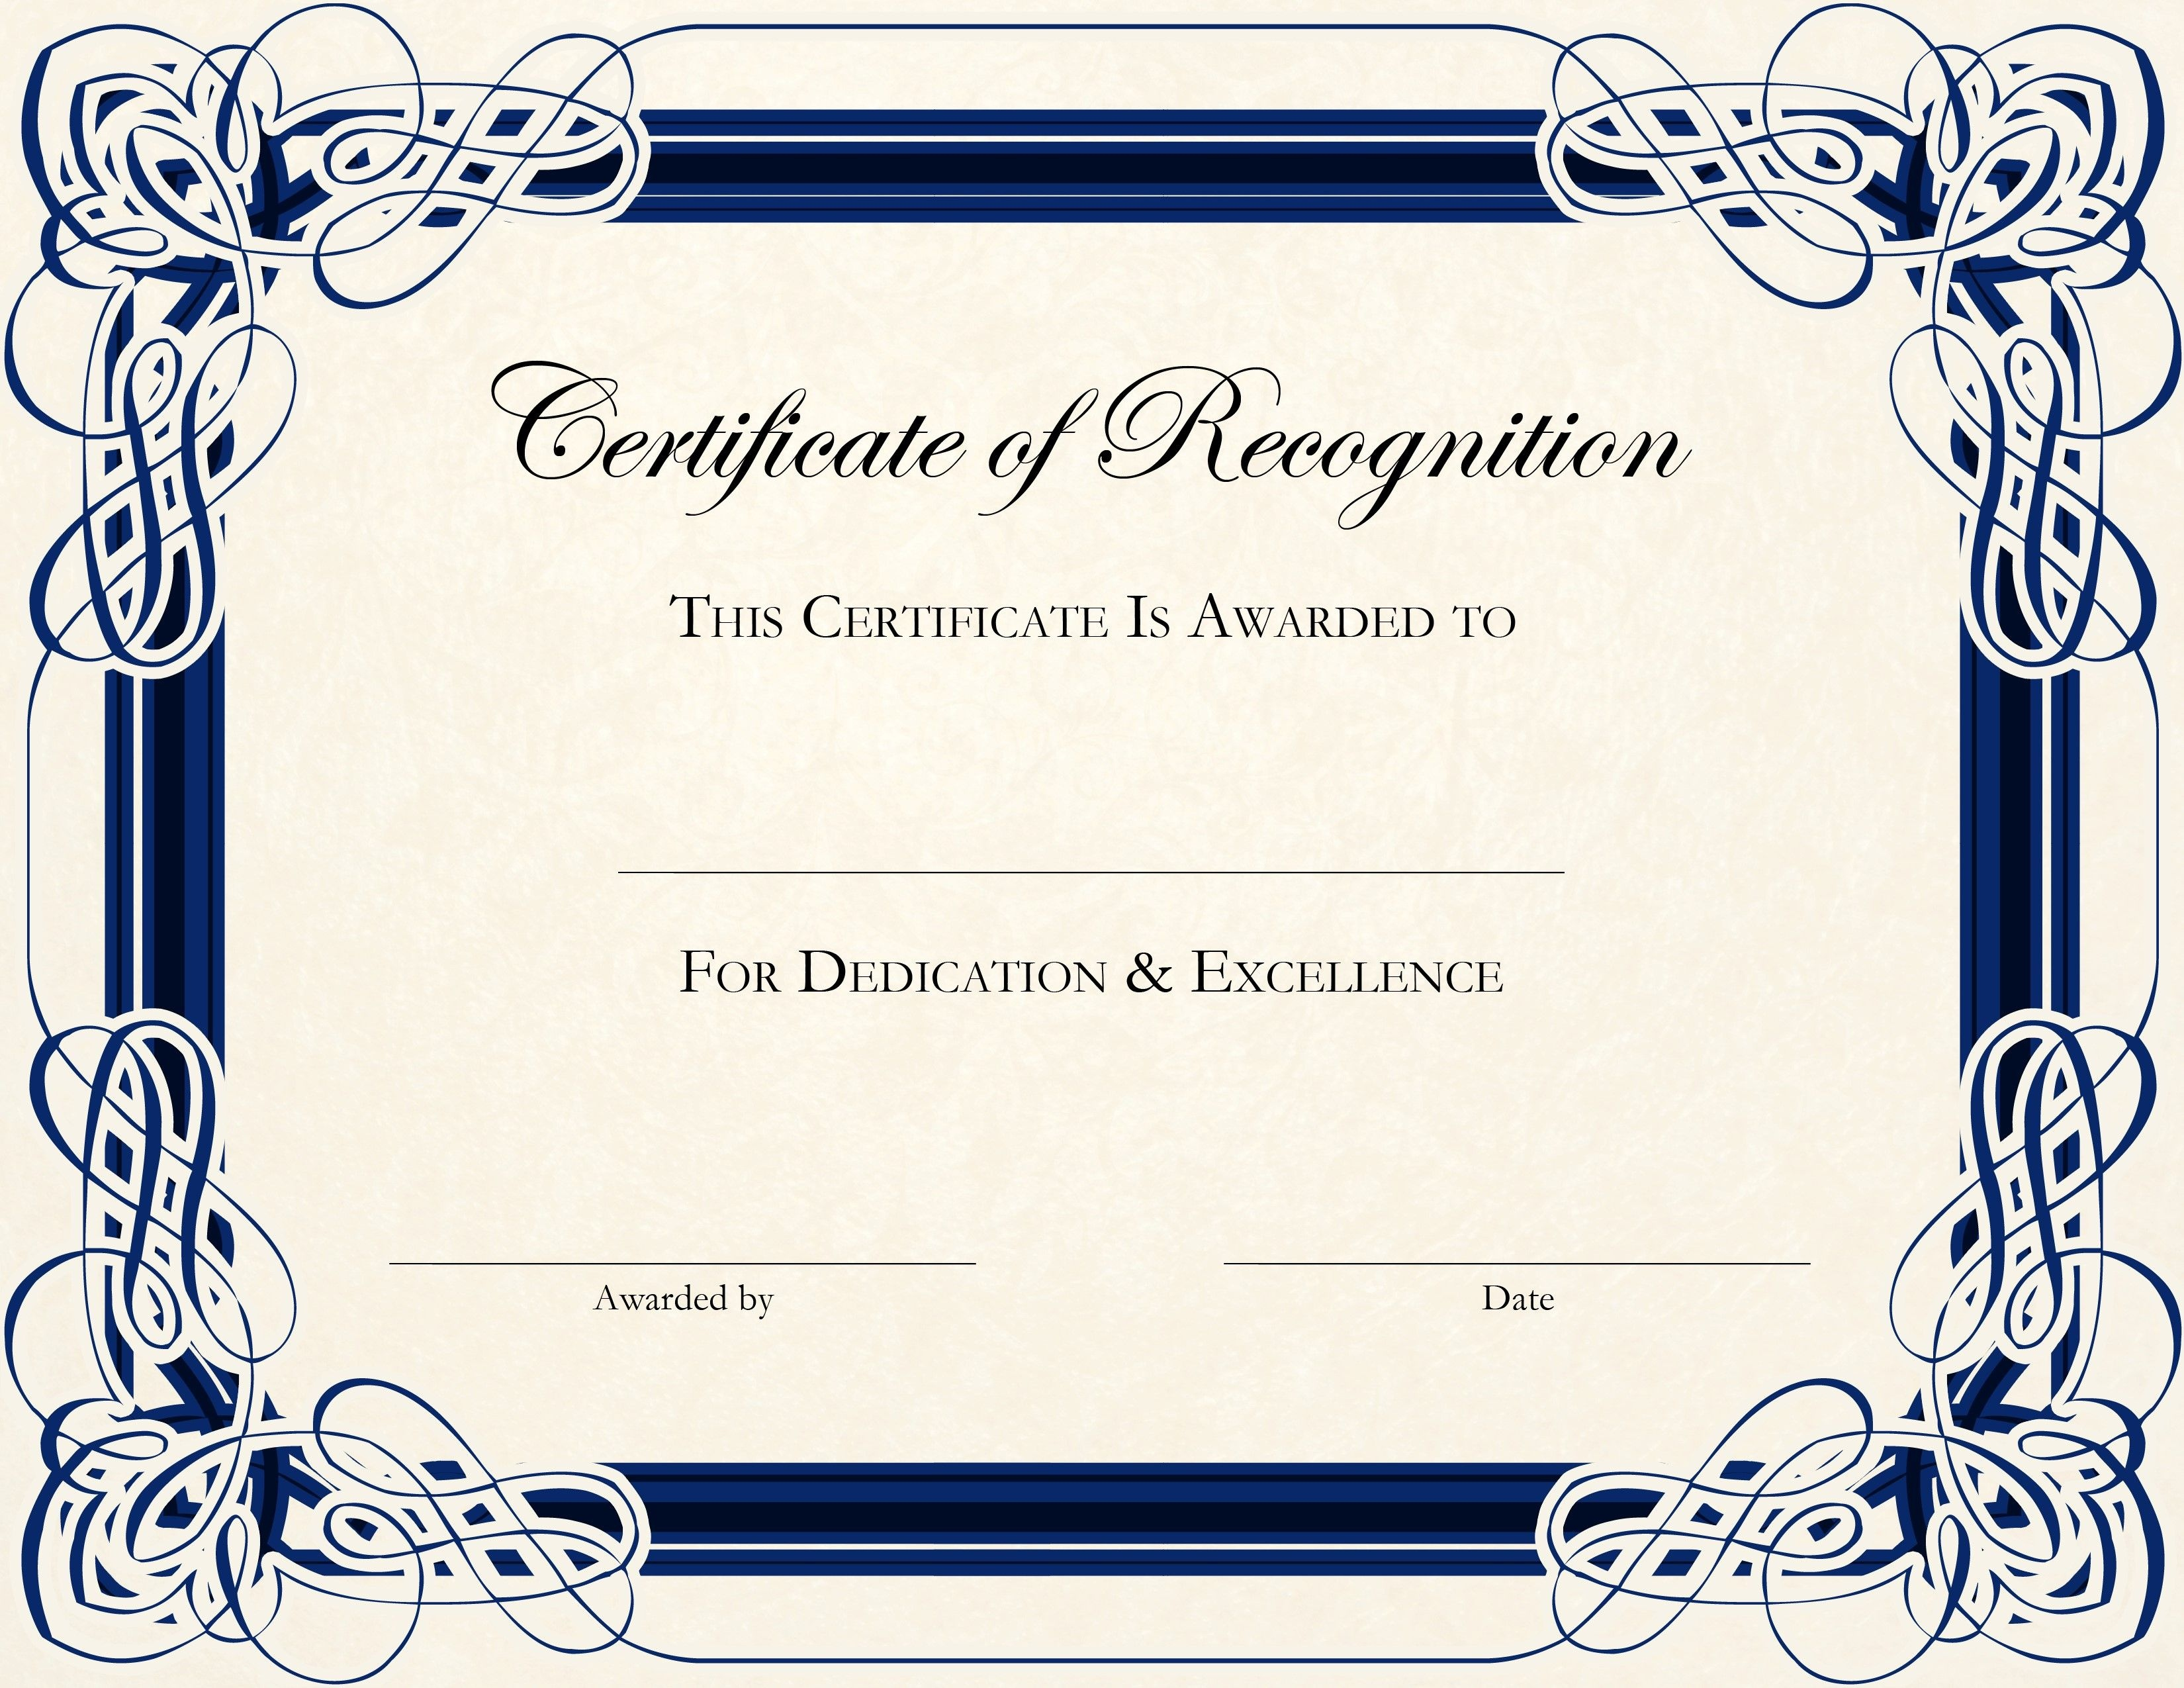 Free Printable Certificate Templates For Teachers | Besttemplate123 - Free Printable Certificates For Students